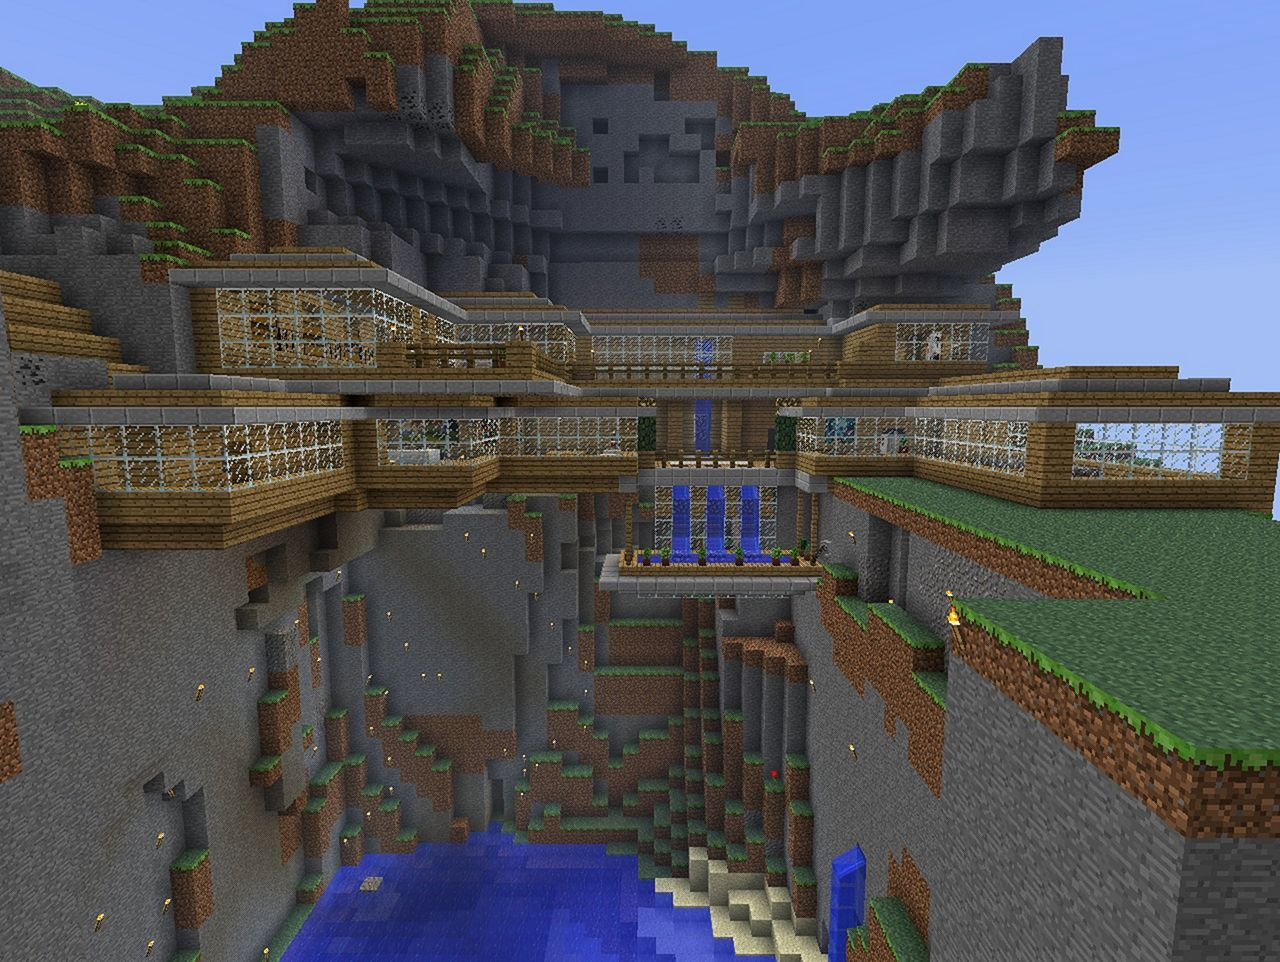 Brilliant gorgeous diy minecraft crafts and party ideas https decoredo also threw this together in an afternoon mountain side house rh pinterest